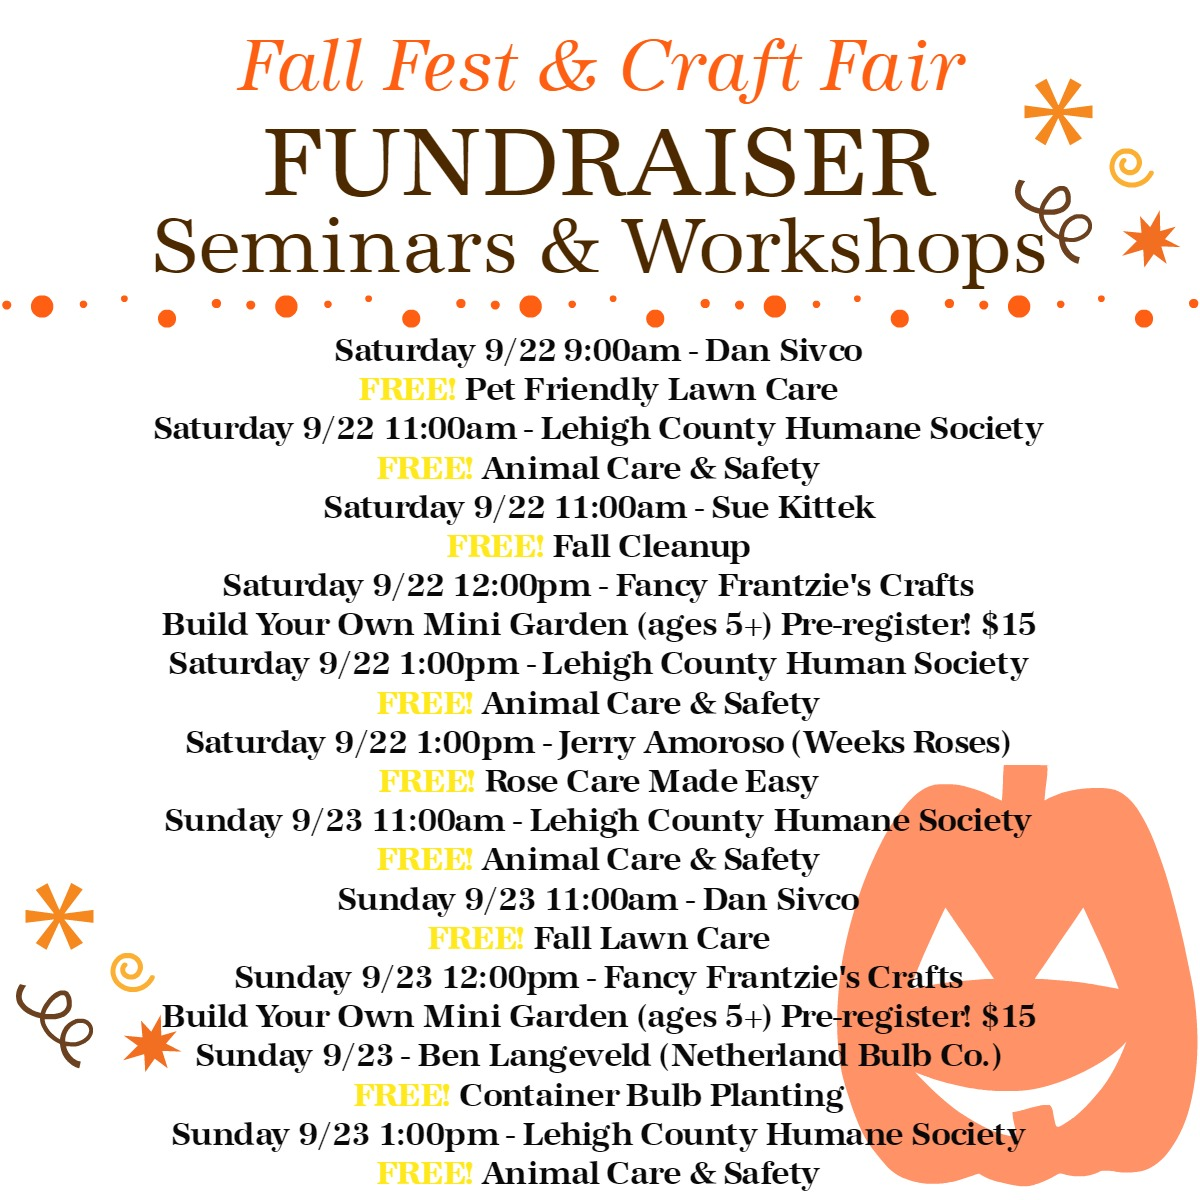 2018 Fall Fest Seminars & Workshops Herbeins Garden Center